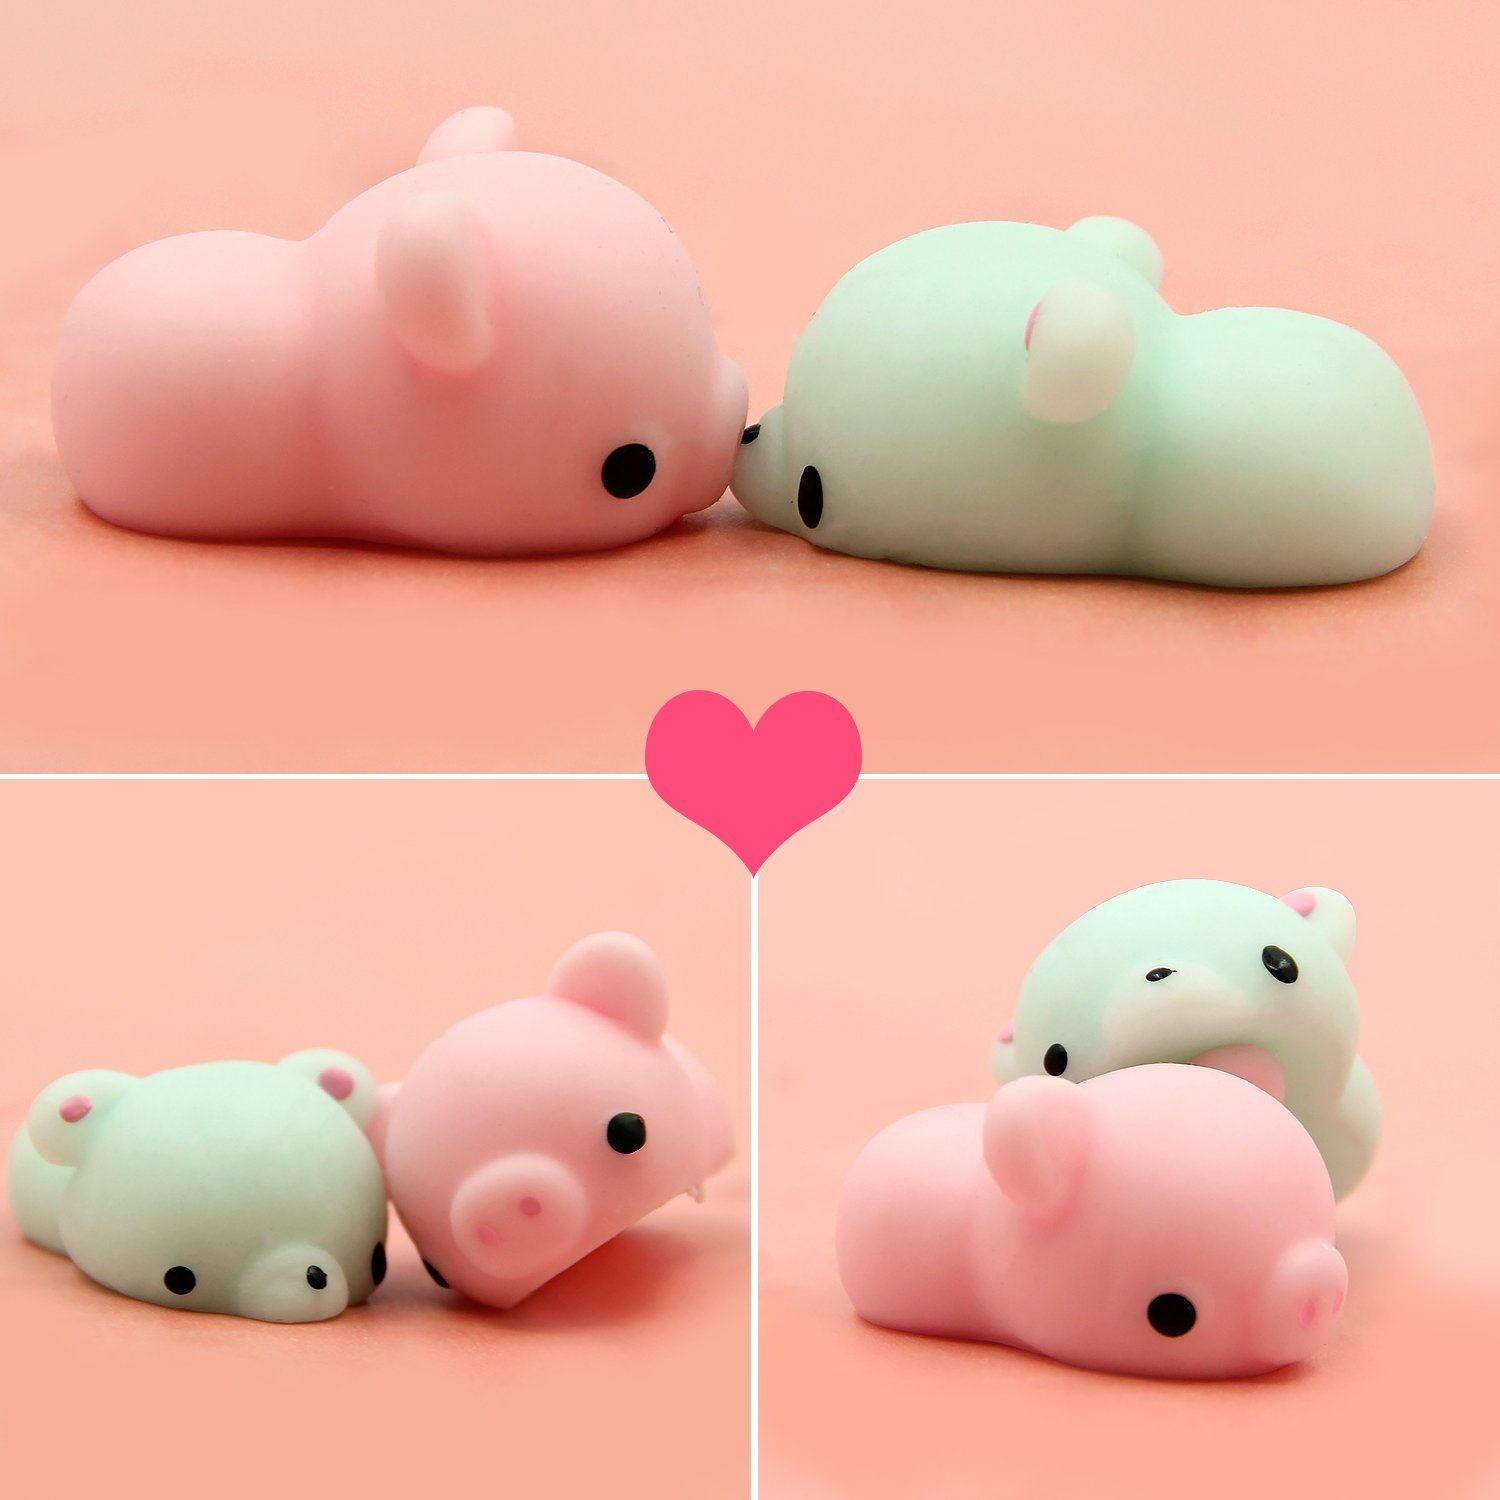 Beautiful 3pcs Kid Toy Hobbie Gift Soft Ushihito Kawaii Cute Squishy Press Slow Rising Mini Small Cloud Squeeze Phone Straps Bread Cake Mobile Phone Accessories